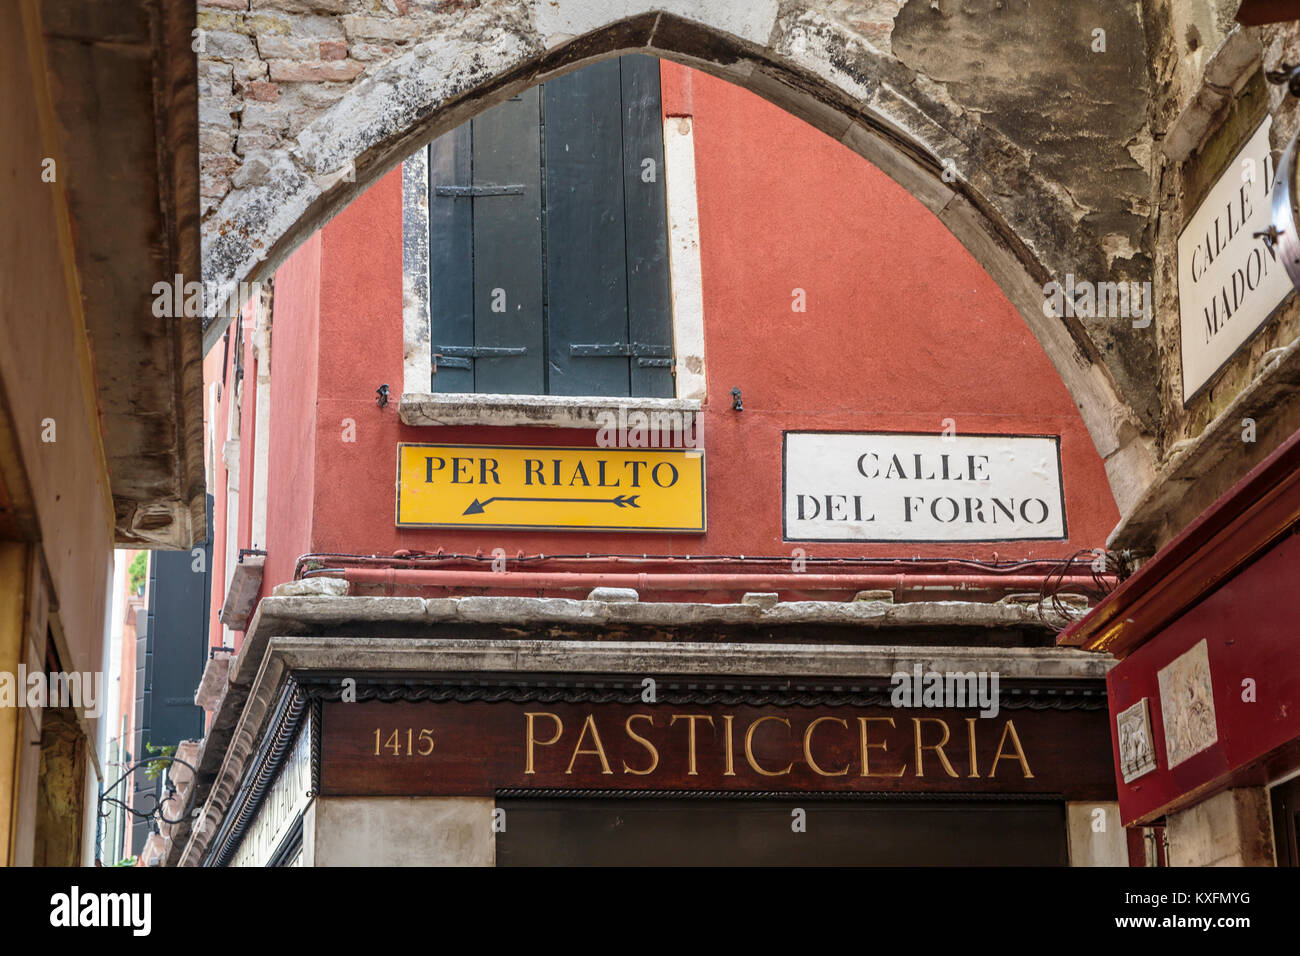 Direction signs and Pasticceria in Veneto, Venice, Italy, Europe. - Stock Image